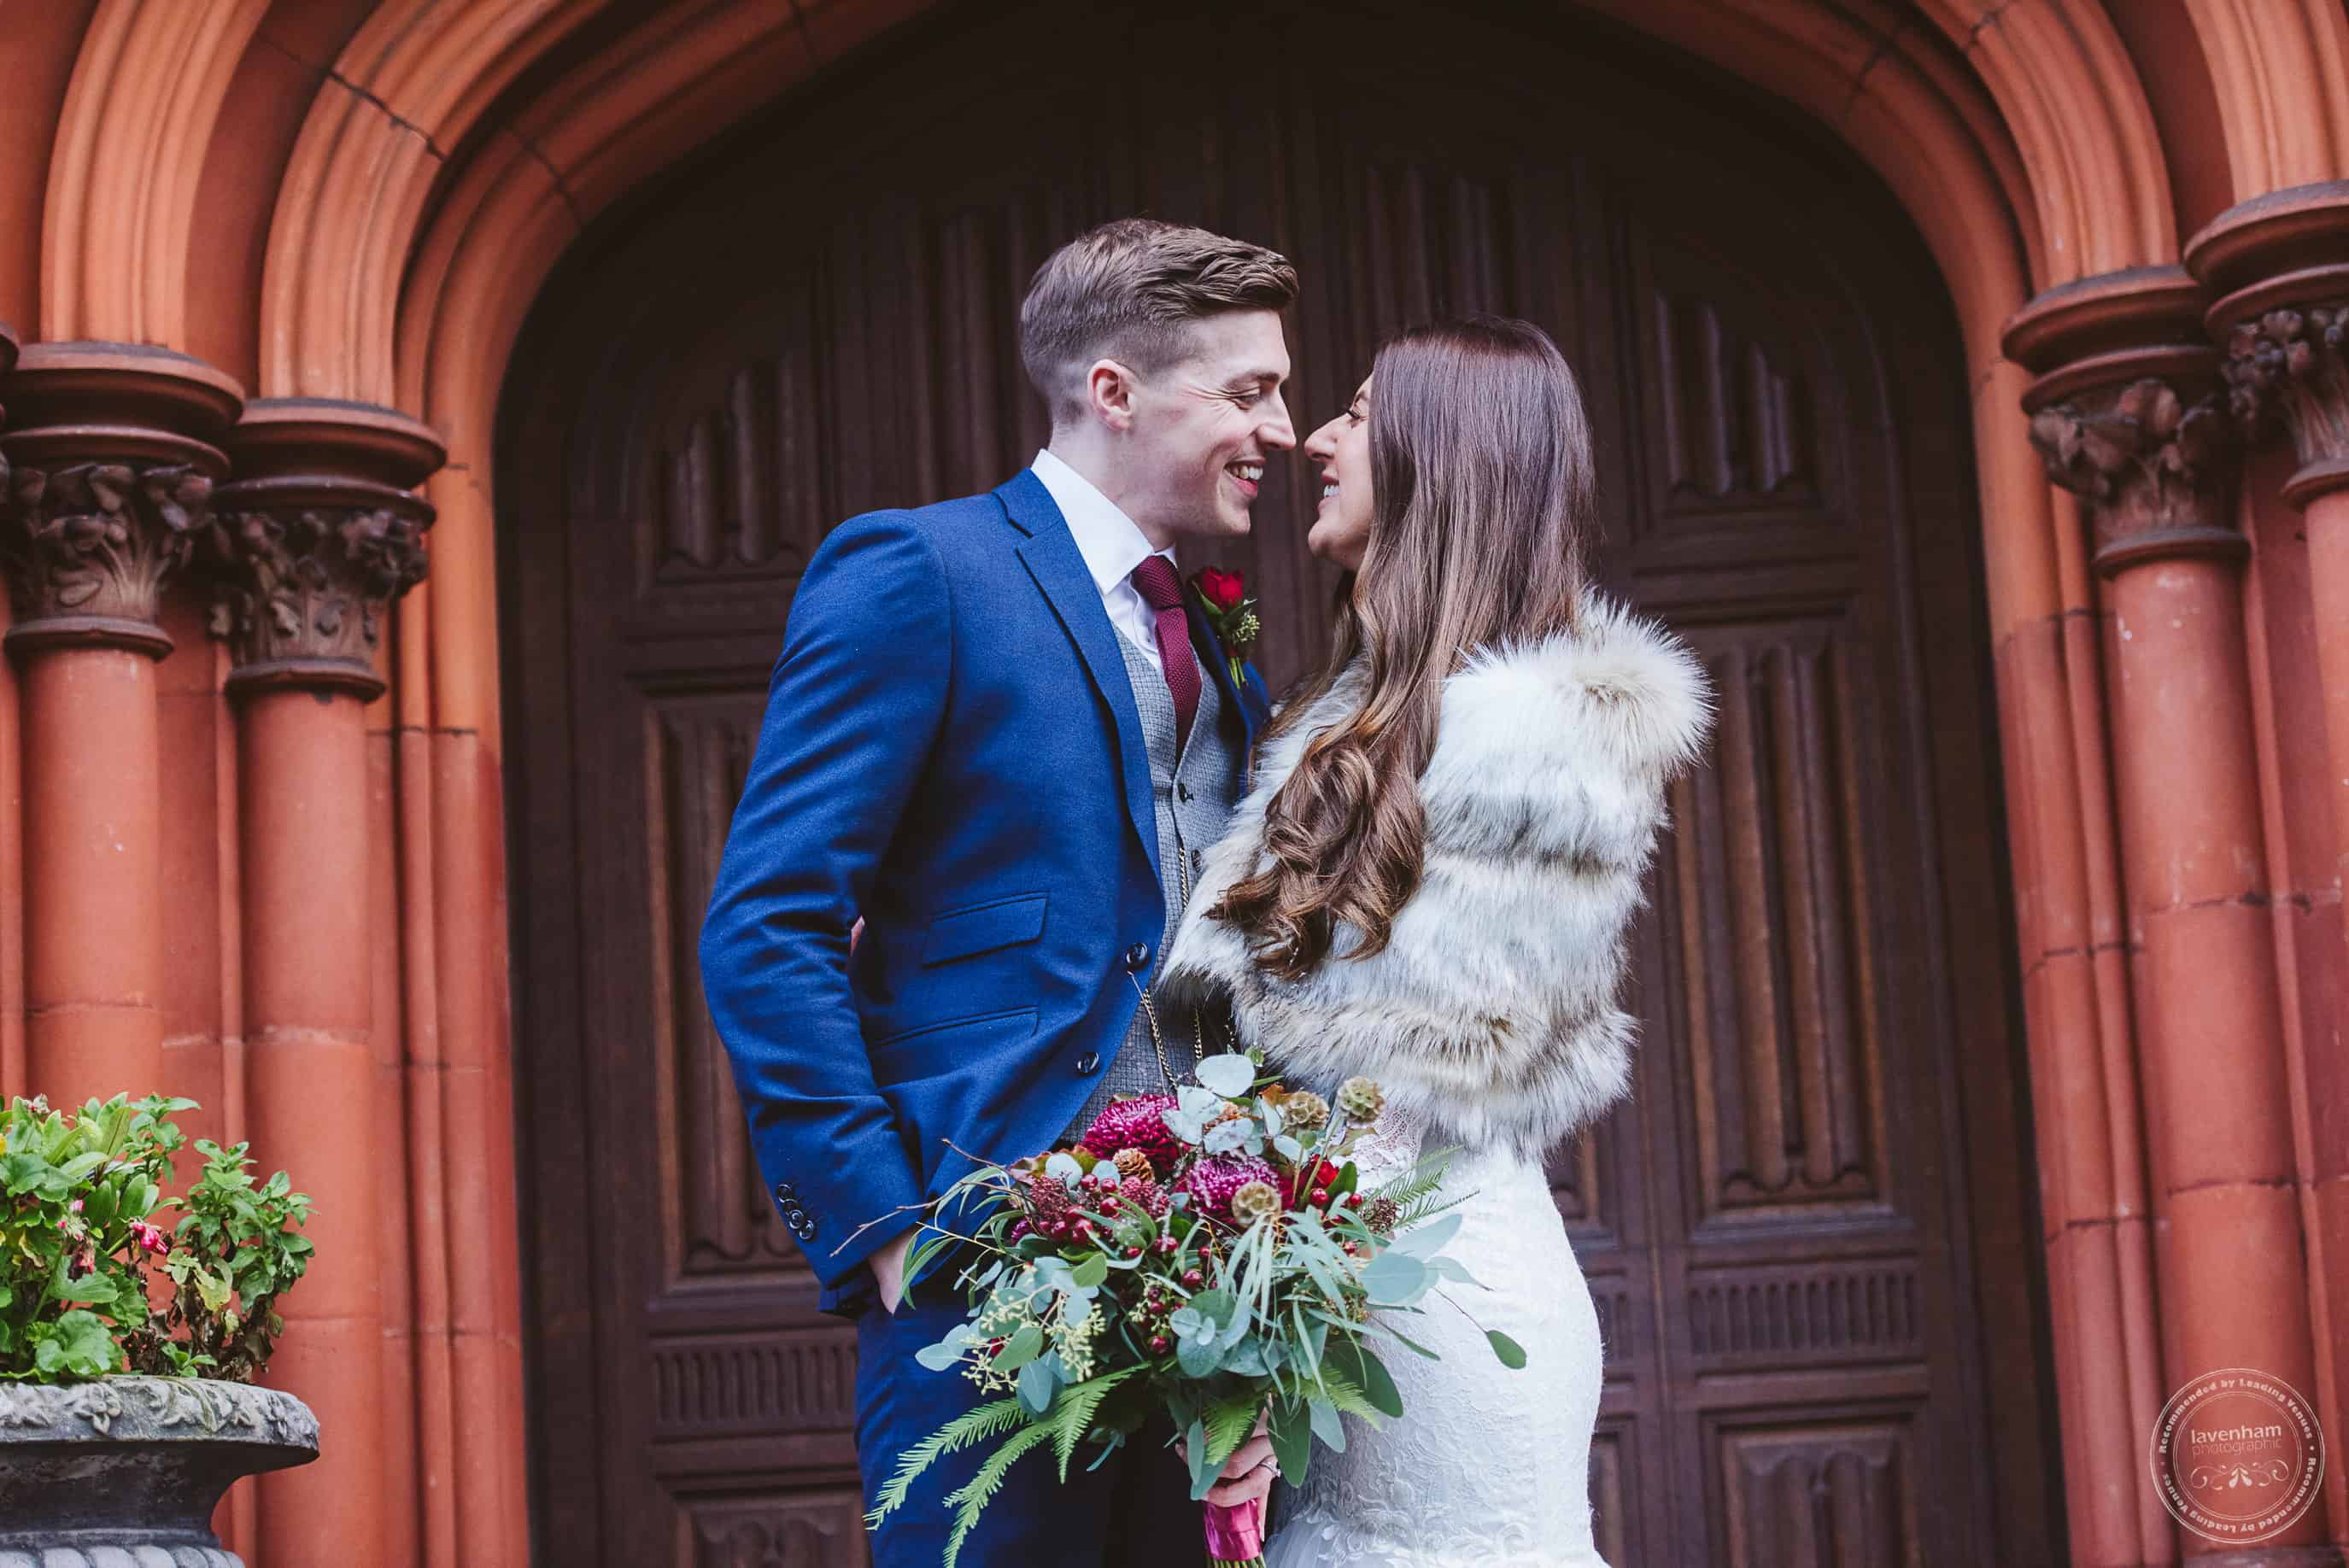 301119 Holmewood Hall Wedding Photographer 138